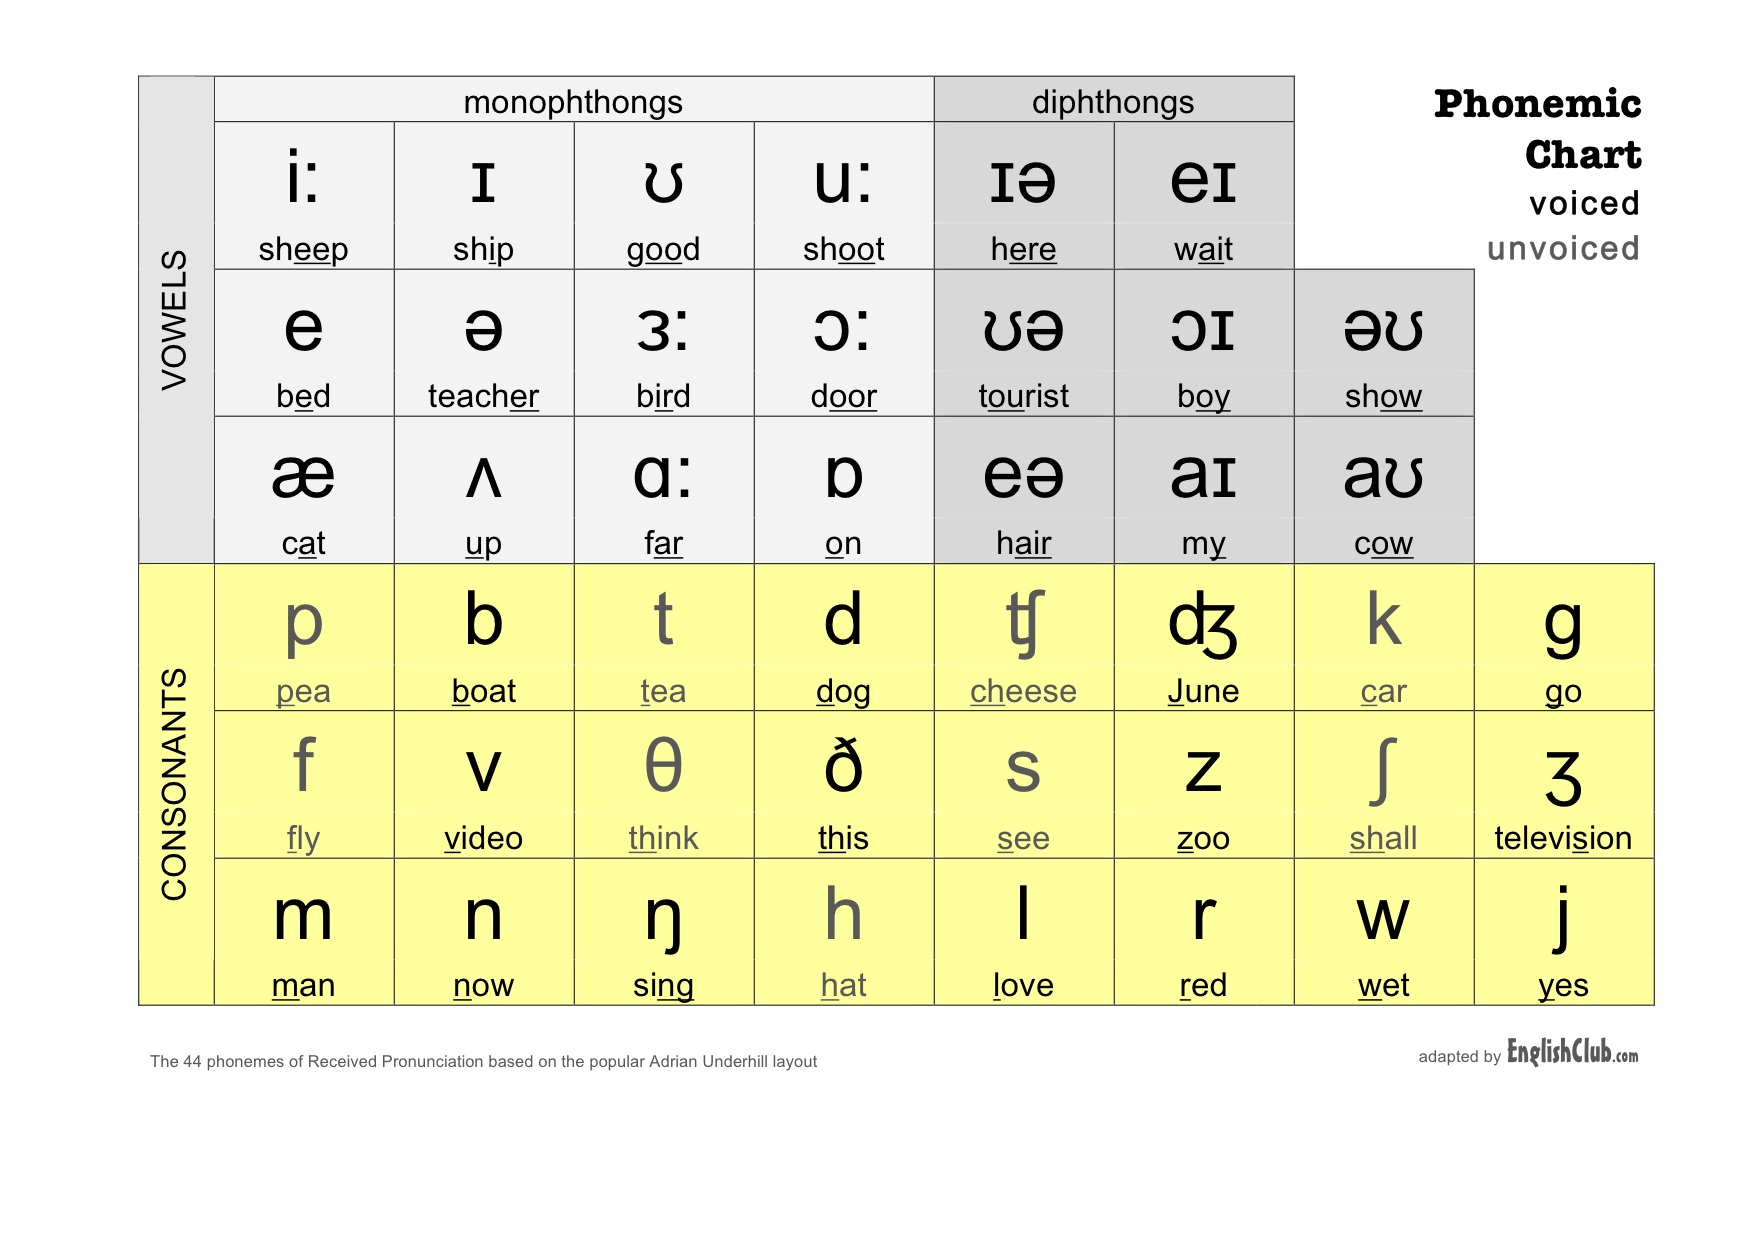 Phonemic Chart | English Club